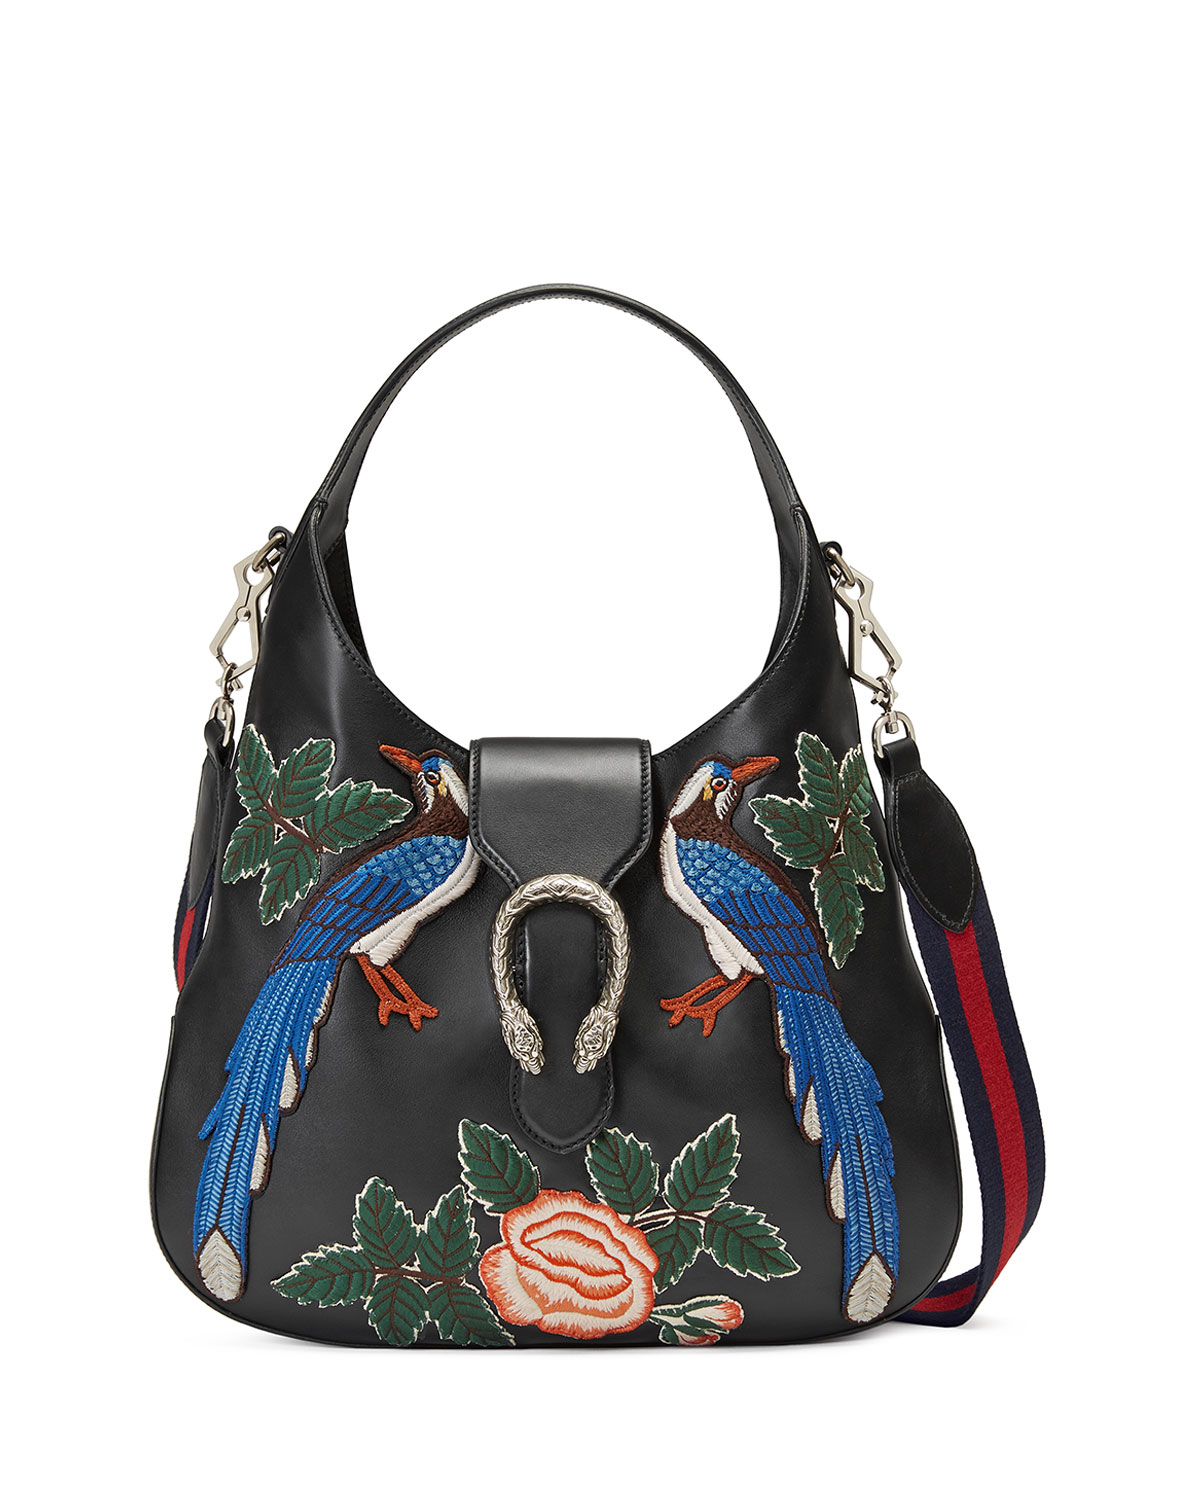 c46b20f9e800 Gucci Dionysus Medium Embroidered-Birds Hobo Bag, Black/Multi ...